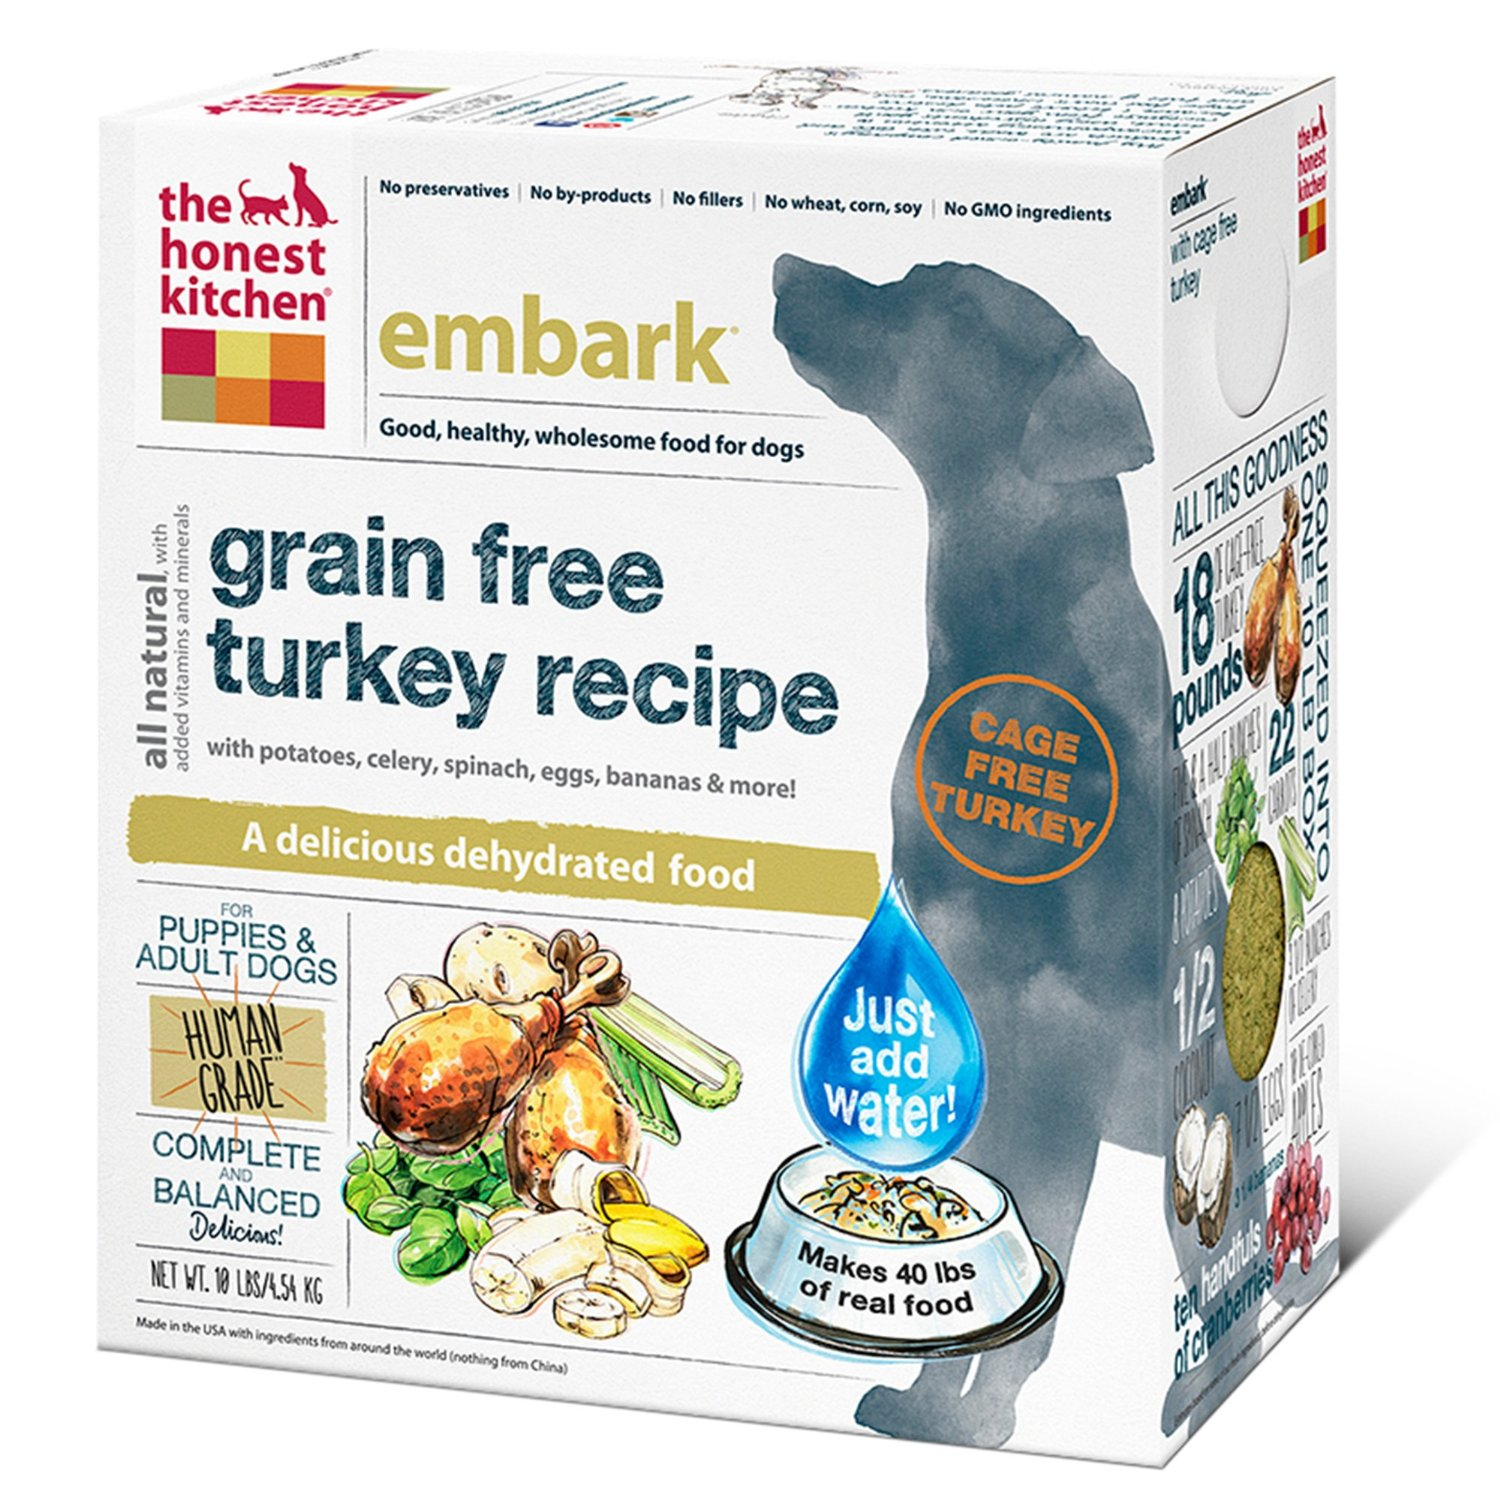 The Honest Kitchen Embark Dehydrated Dog Food 4lbs